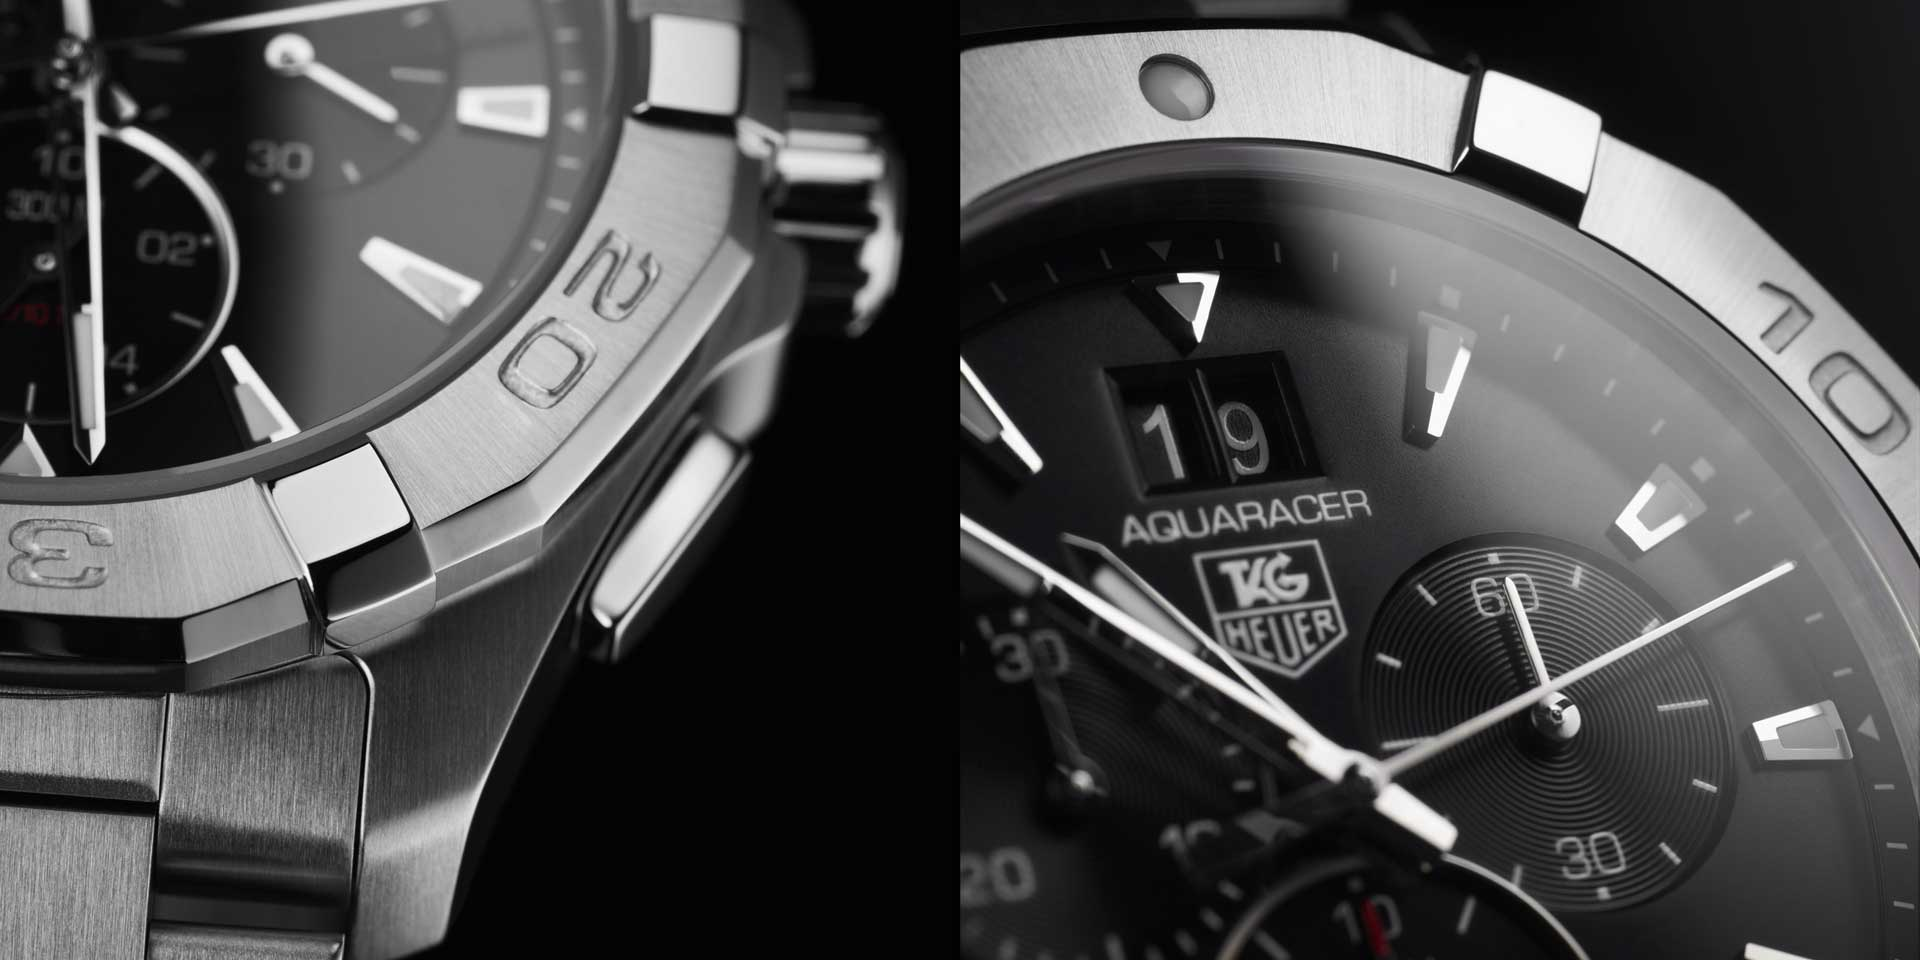 AQUARACER Quartz Chronograph - feature